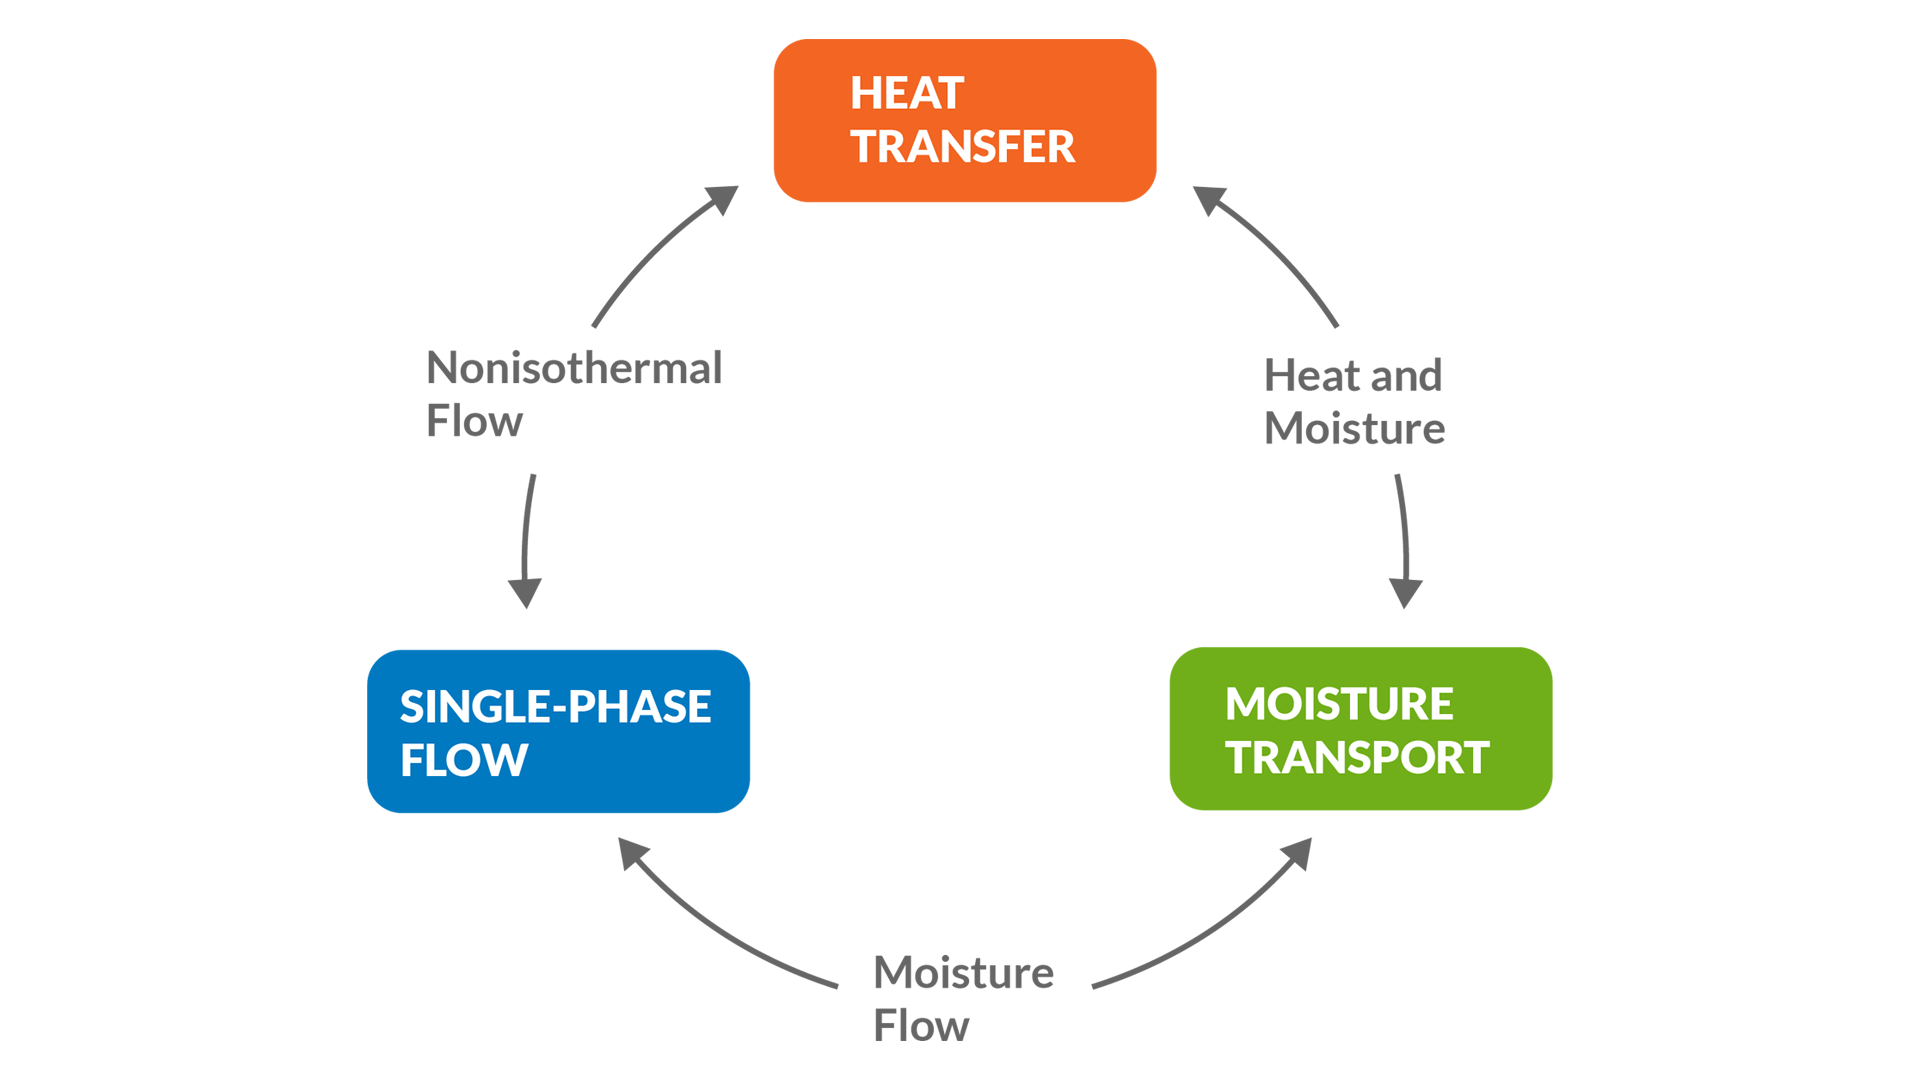 The Moisture Flow coupling completes a comprehensive multiphysics approach to modeling moisture flow in air with the Heat Transfer Module.